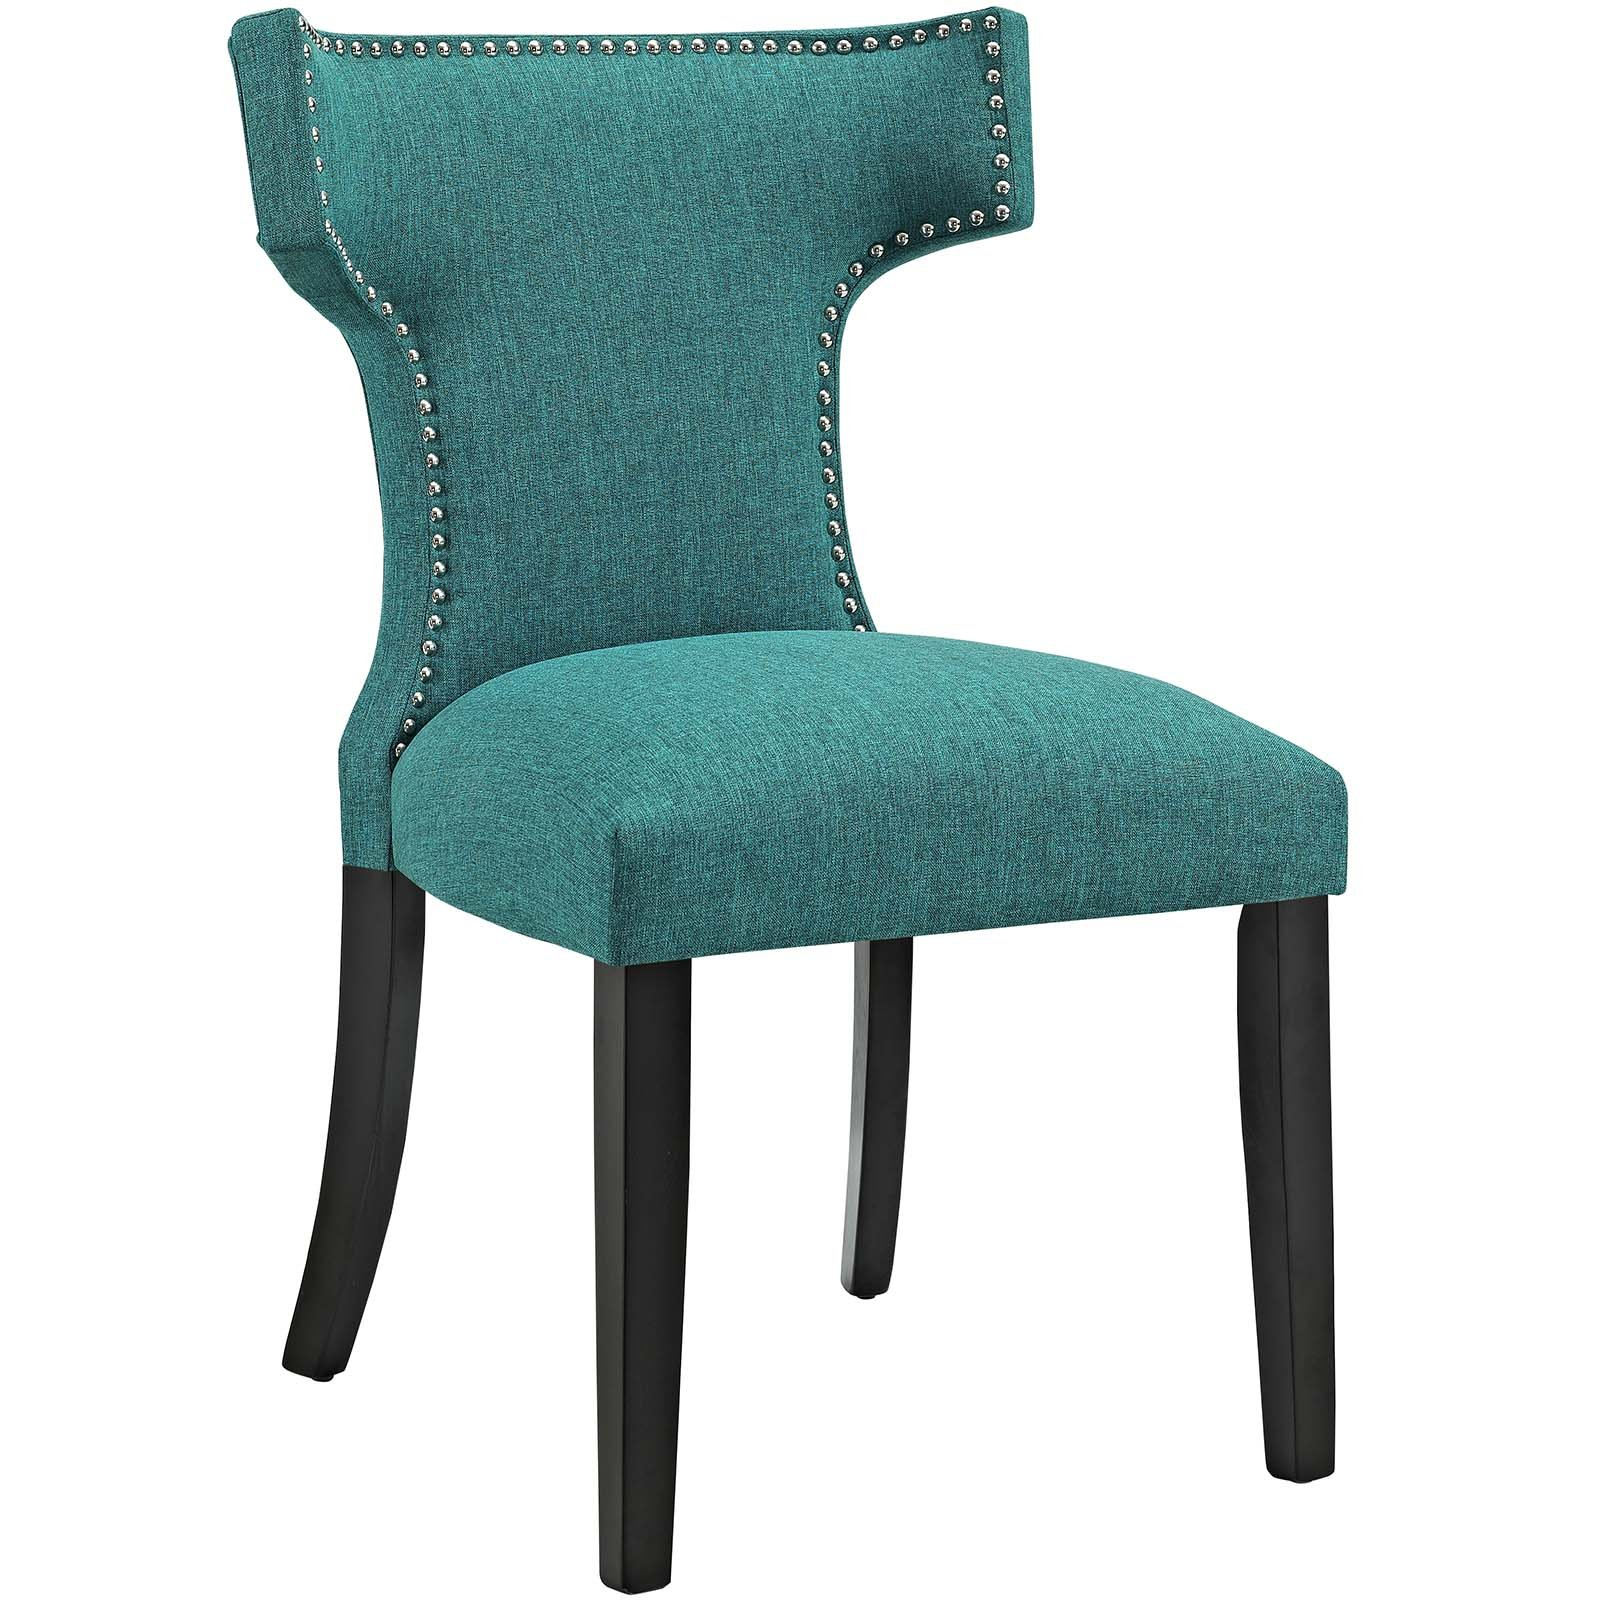 Modway Curve Mid-Century Modern Upholstered Fabric Dining Chair With Nailhead Trim In Teal